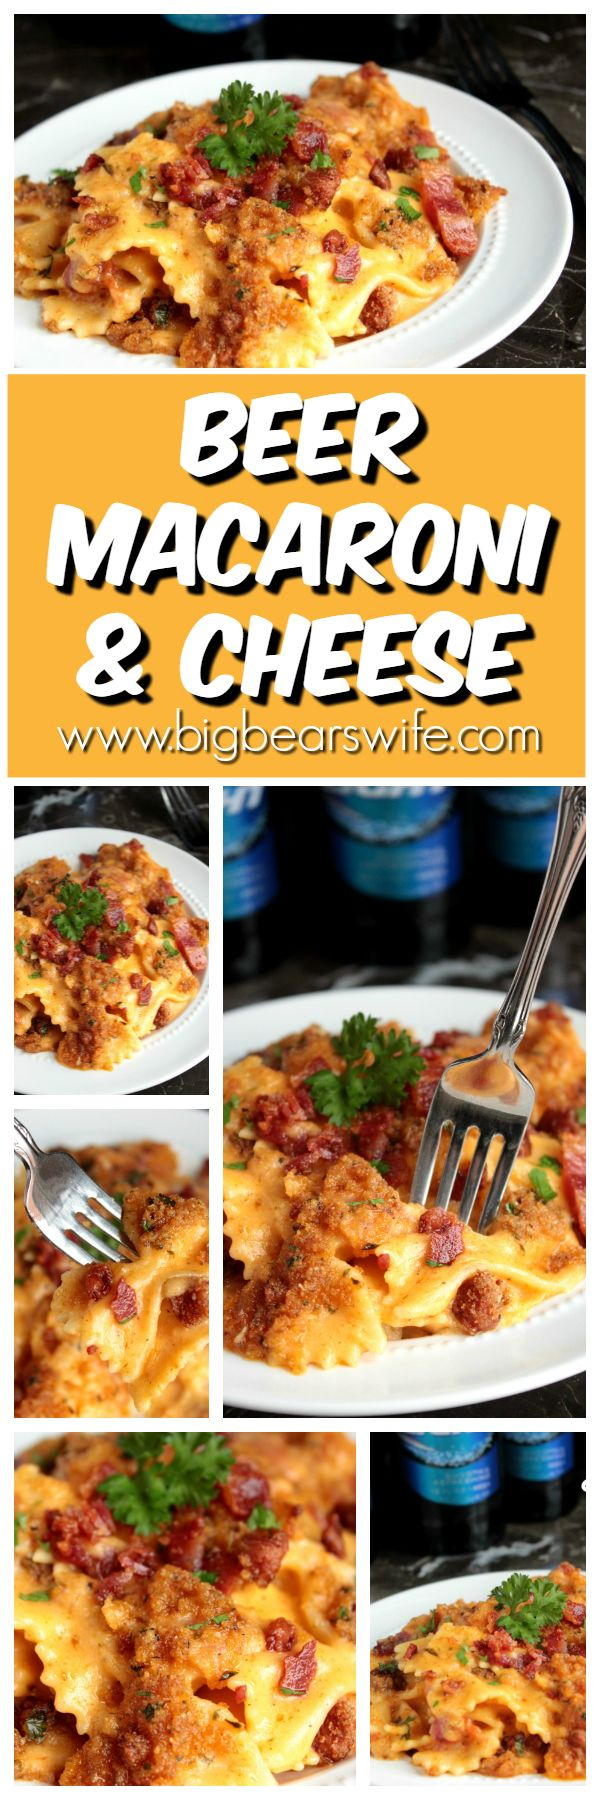 Beyond amazing. One of the best mac and cheese recipes on Pinterest!!     Beer Macaroni and Cheese - Bacon Beer Macaroni and Cheese - Big Bear's Wife (Baking Macaroni And Cheese Dinners)